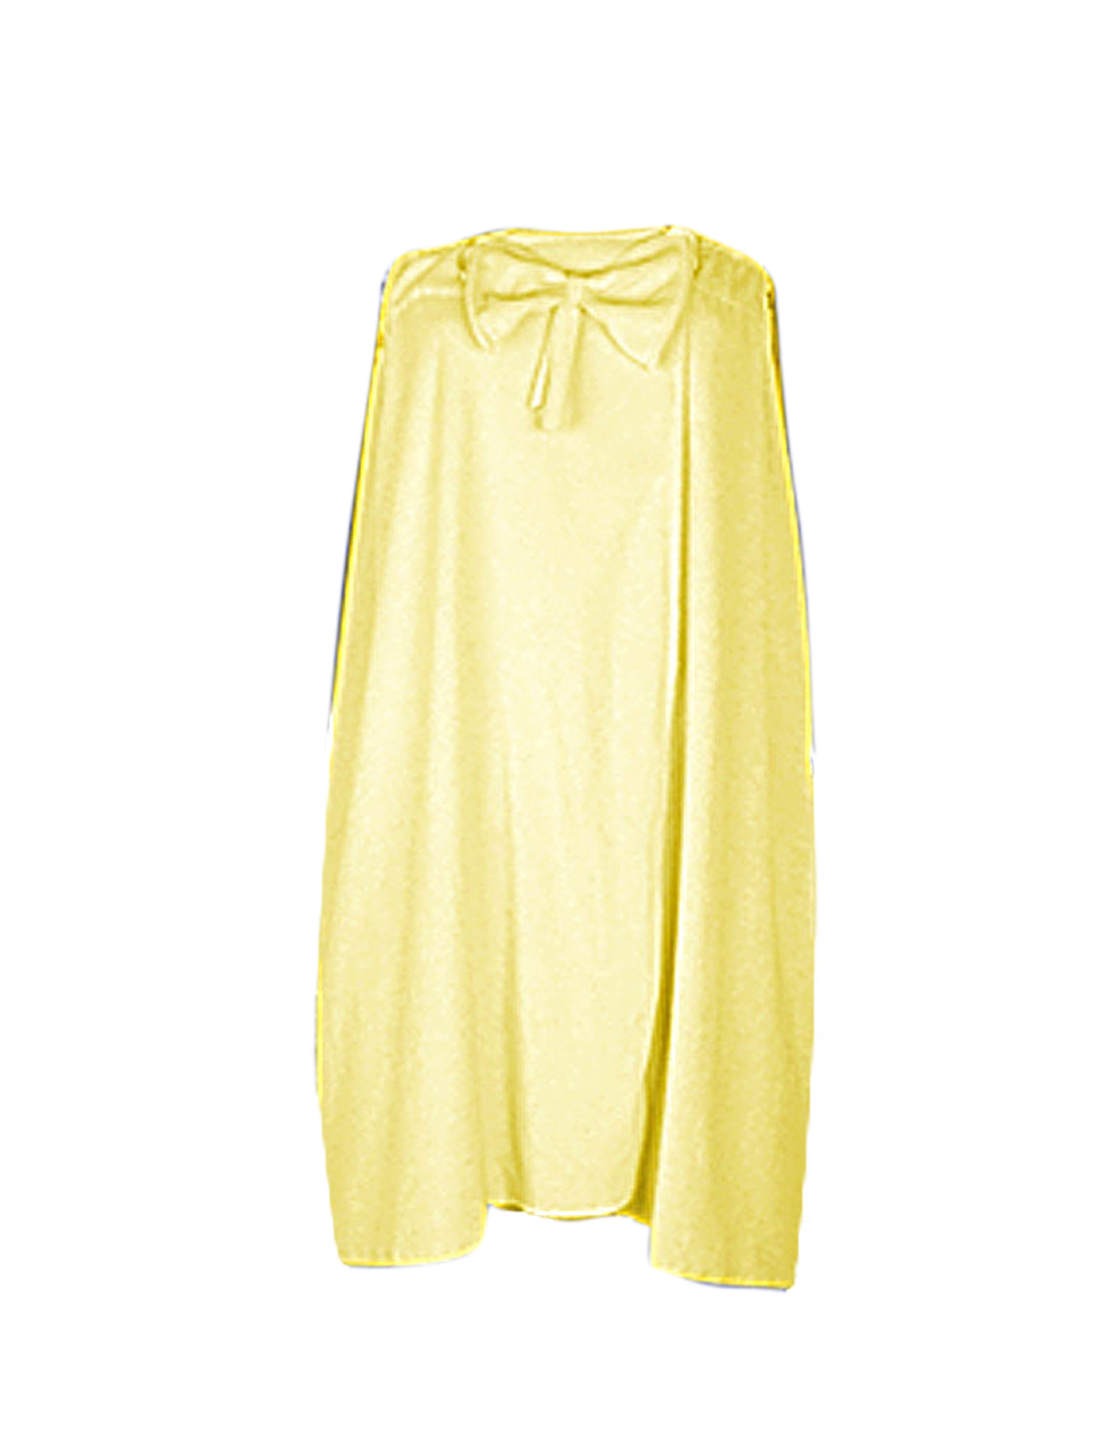 Women Light Yellow Terry SPA Body Wrap Towel Shower Bath Robe